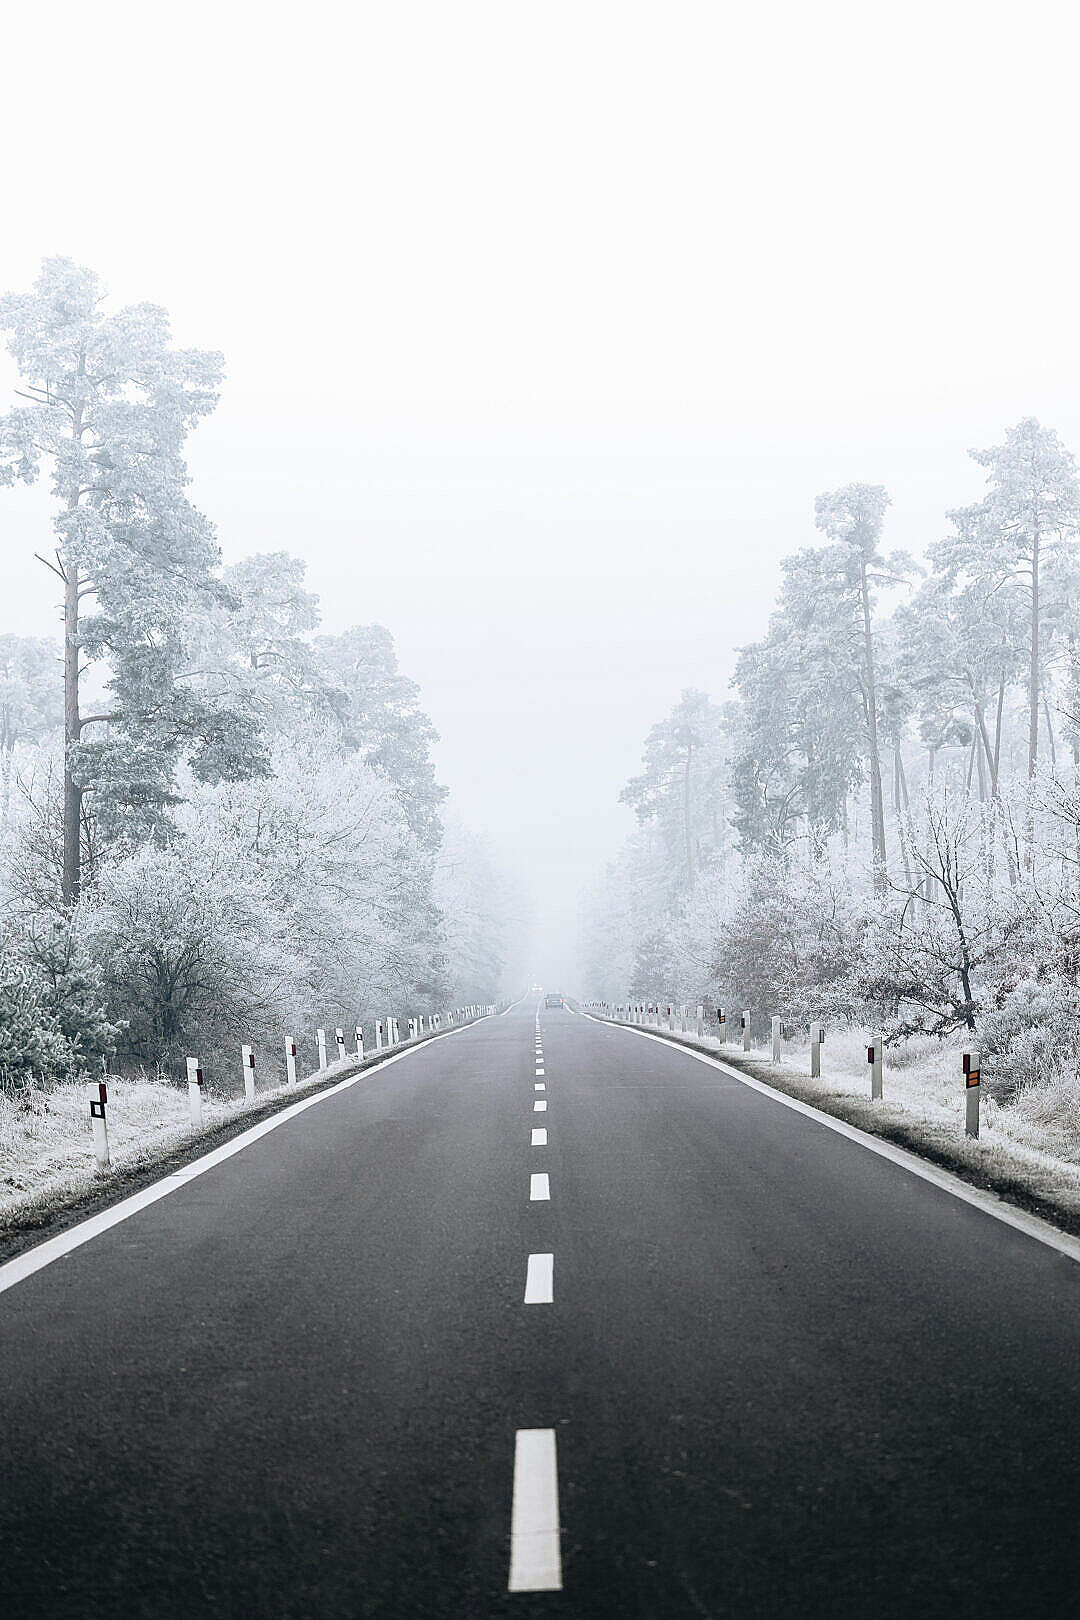 Download Road Through Snowy Forest FREE Stock Photo